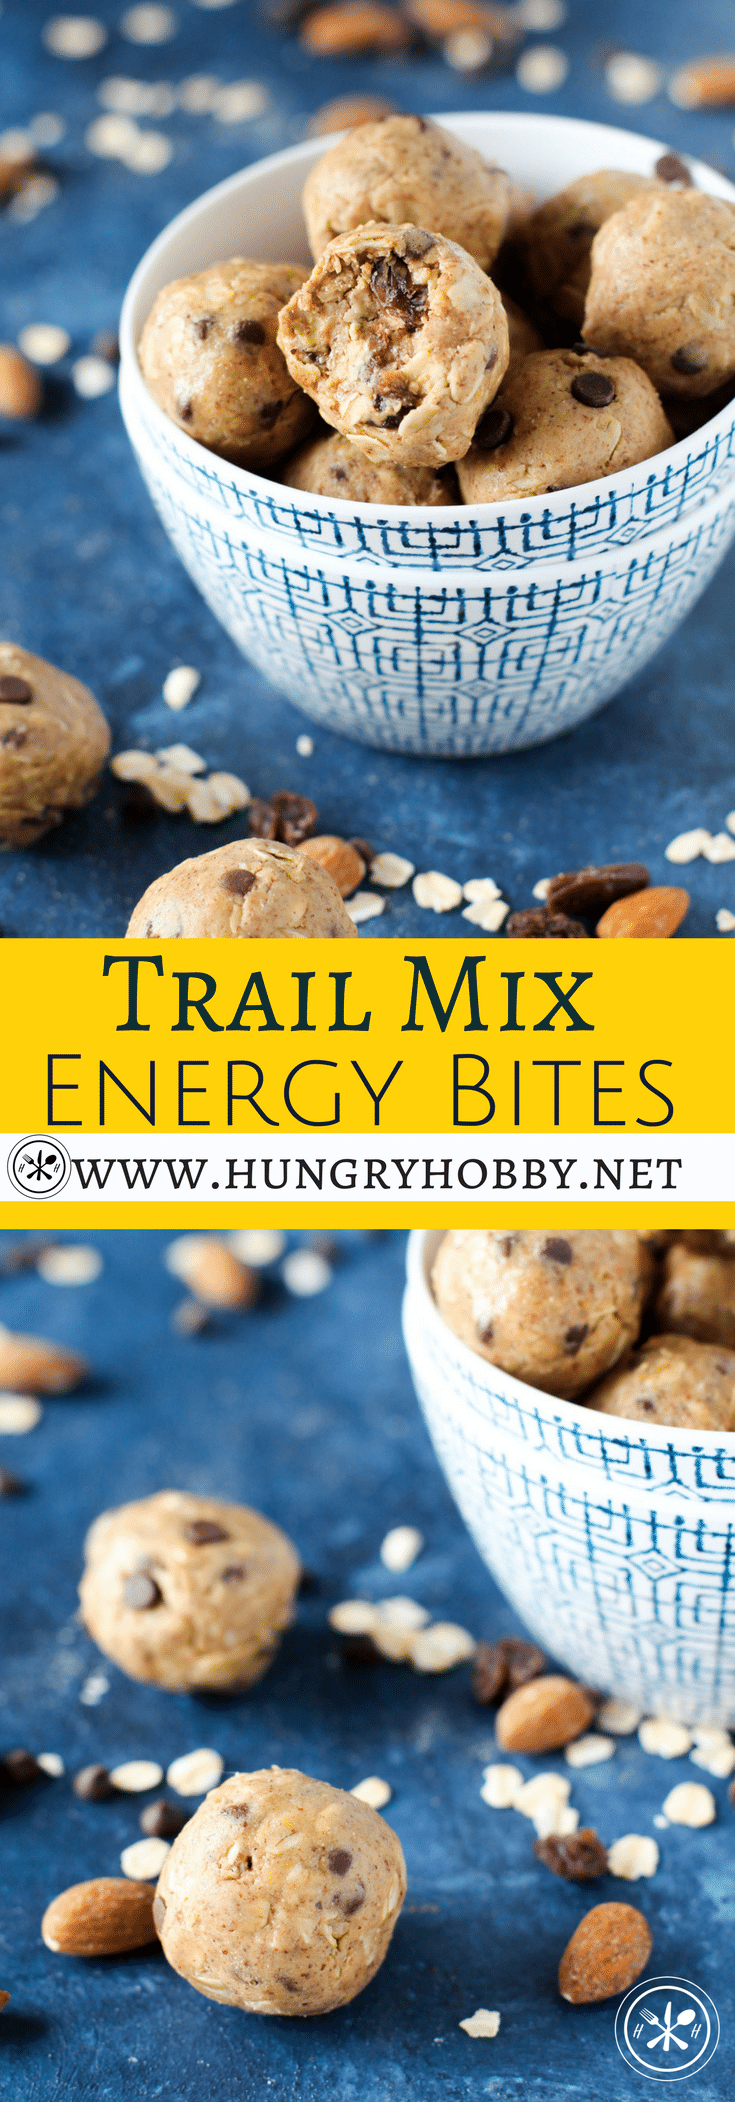 I've been making these trail mix energy bites to stave off #morningsickness whenever I feel it coming on! They are a quick healthy on the go snack that tastes like a handful of trail mix in cookie dough form!  #healthy #glutenfree #snack #hungryhobby #proteinballs #energyballs #amazeballs #healthysnack #proteinbites #energybites